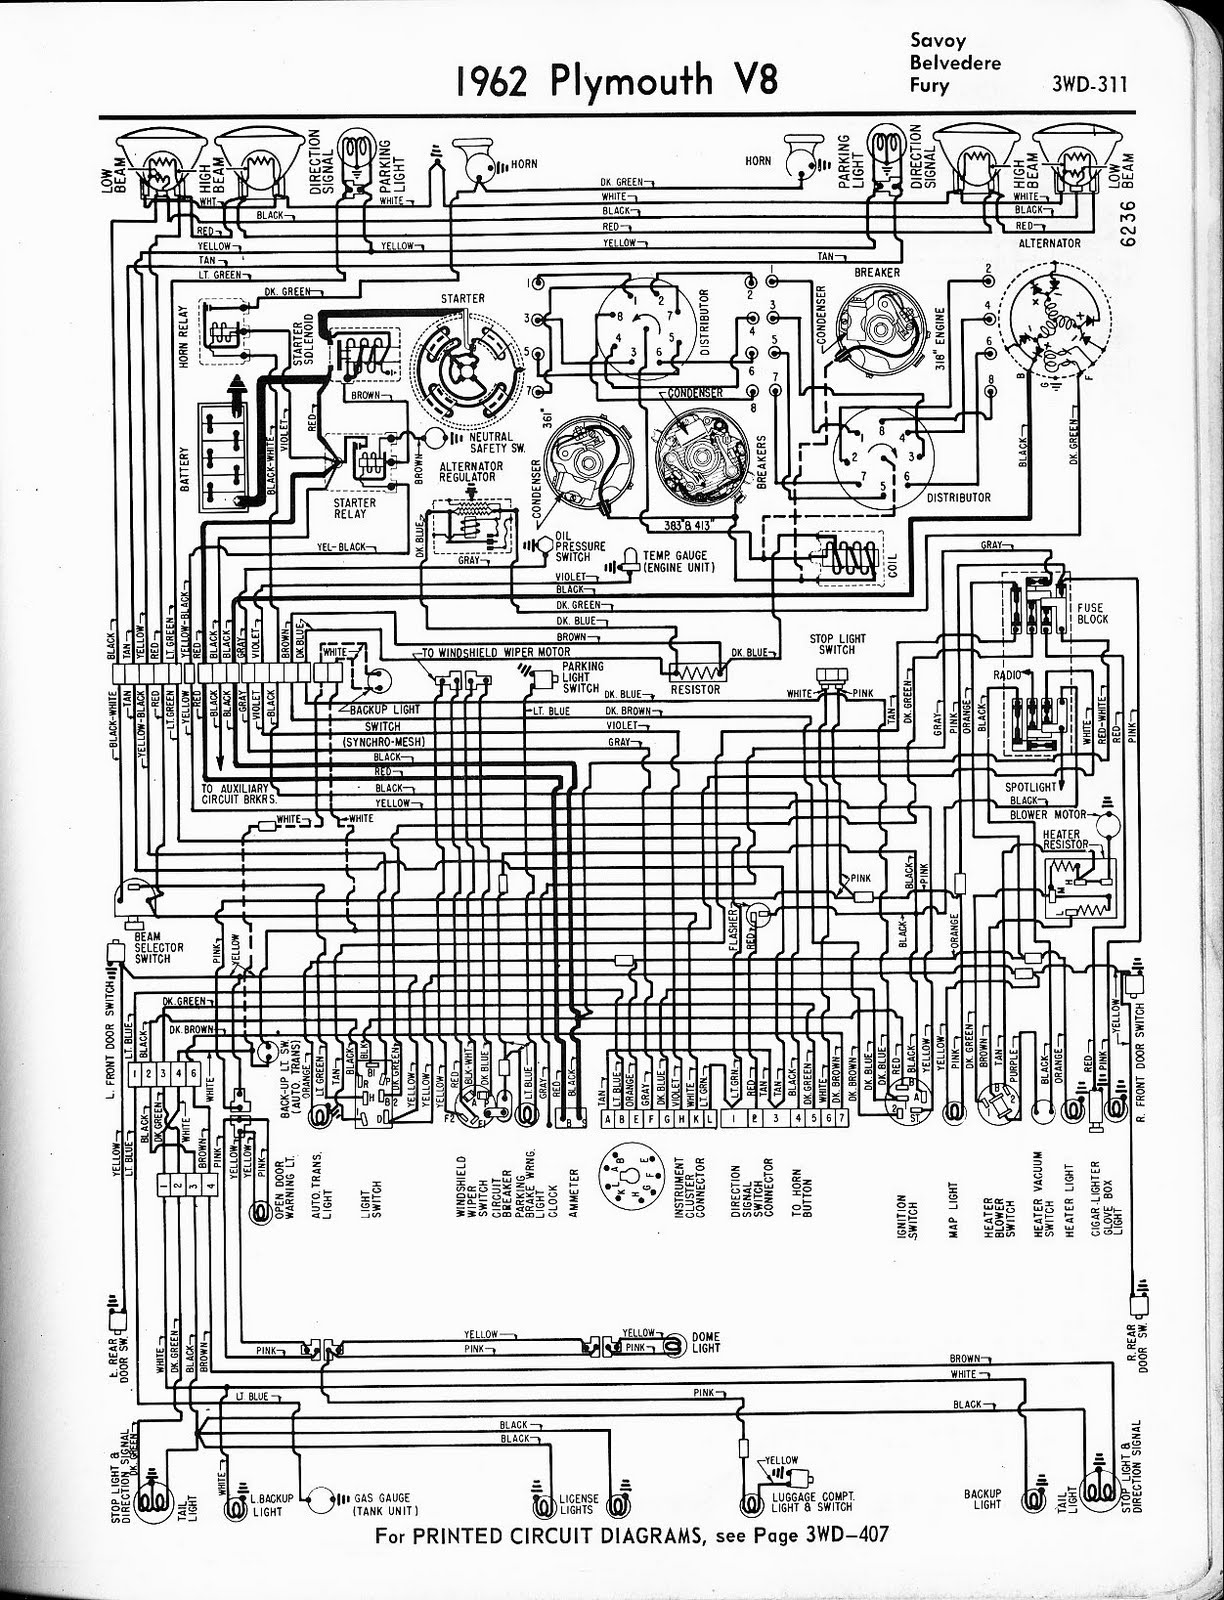 Free Auto Wiring Diagram  1962 Plymouth V8 Savoy  Belvedere  Fury Wiring